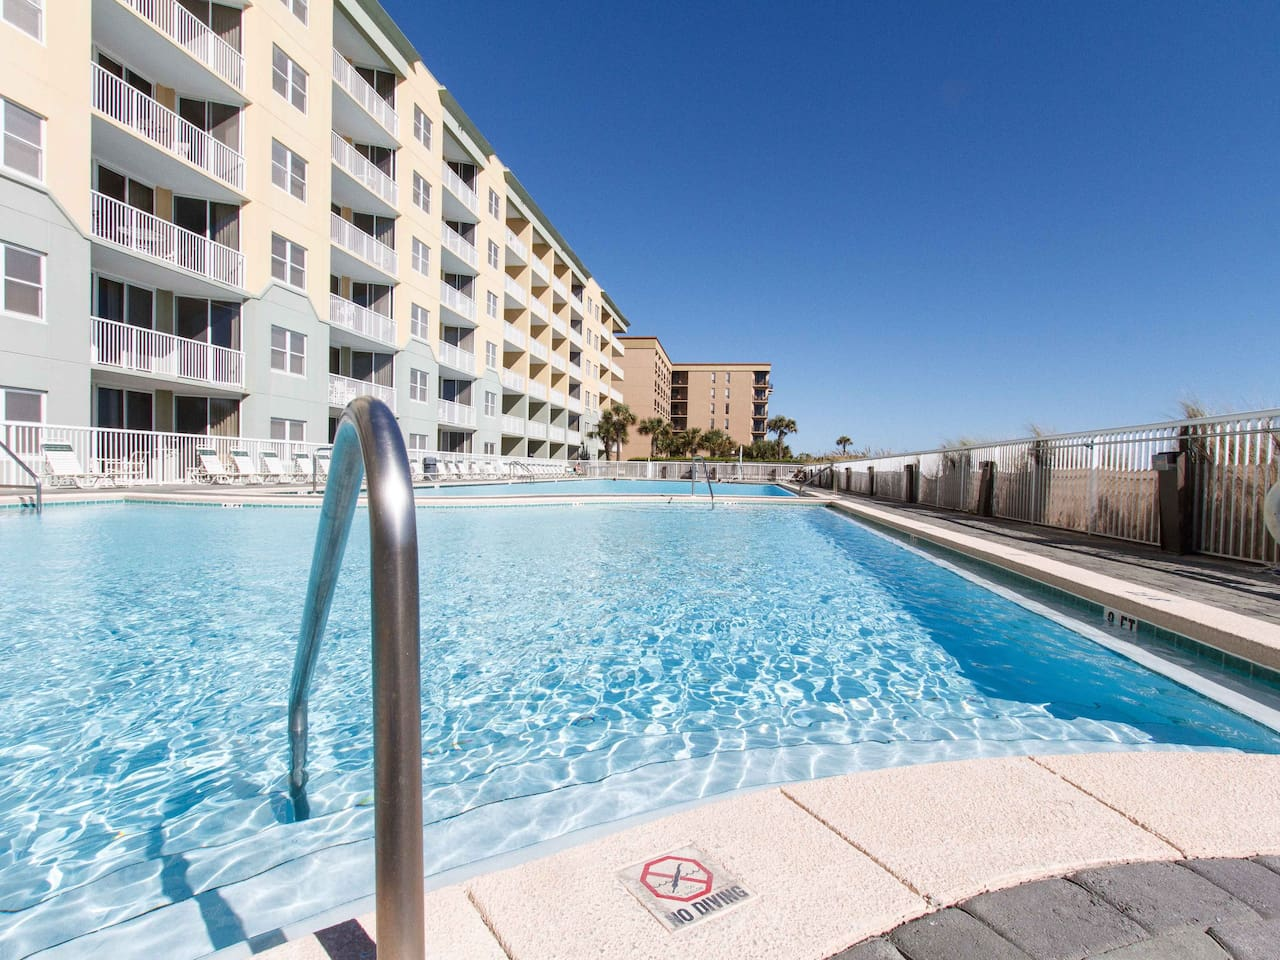 Features one of the largest pools on Okaloosa Island! One section is heated through the winter.